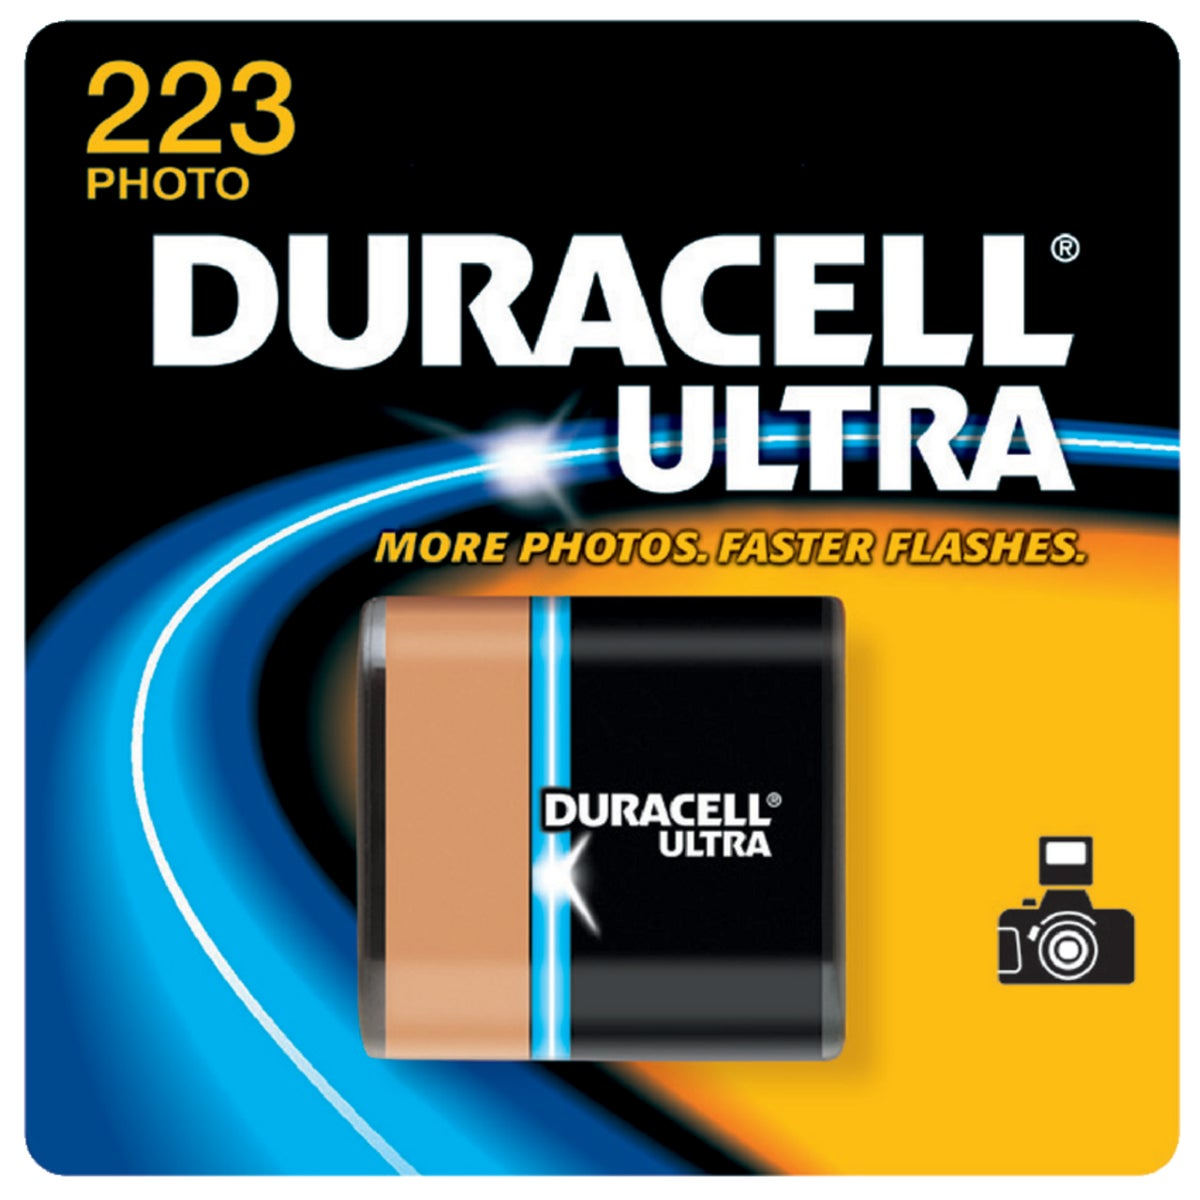 DL223 6V CAMERA BATTERY - 27387 by P & G  Duracell